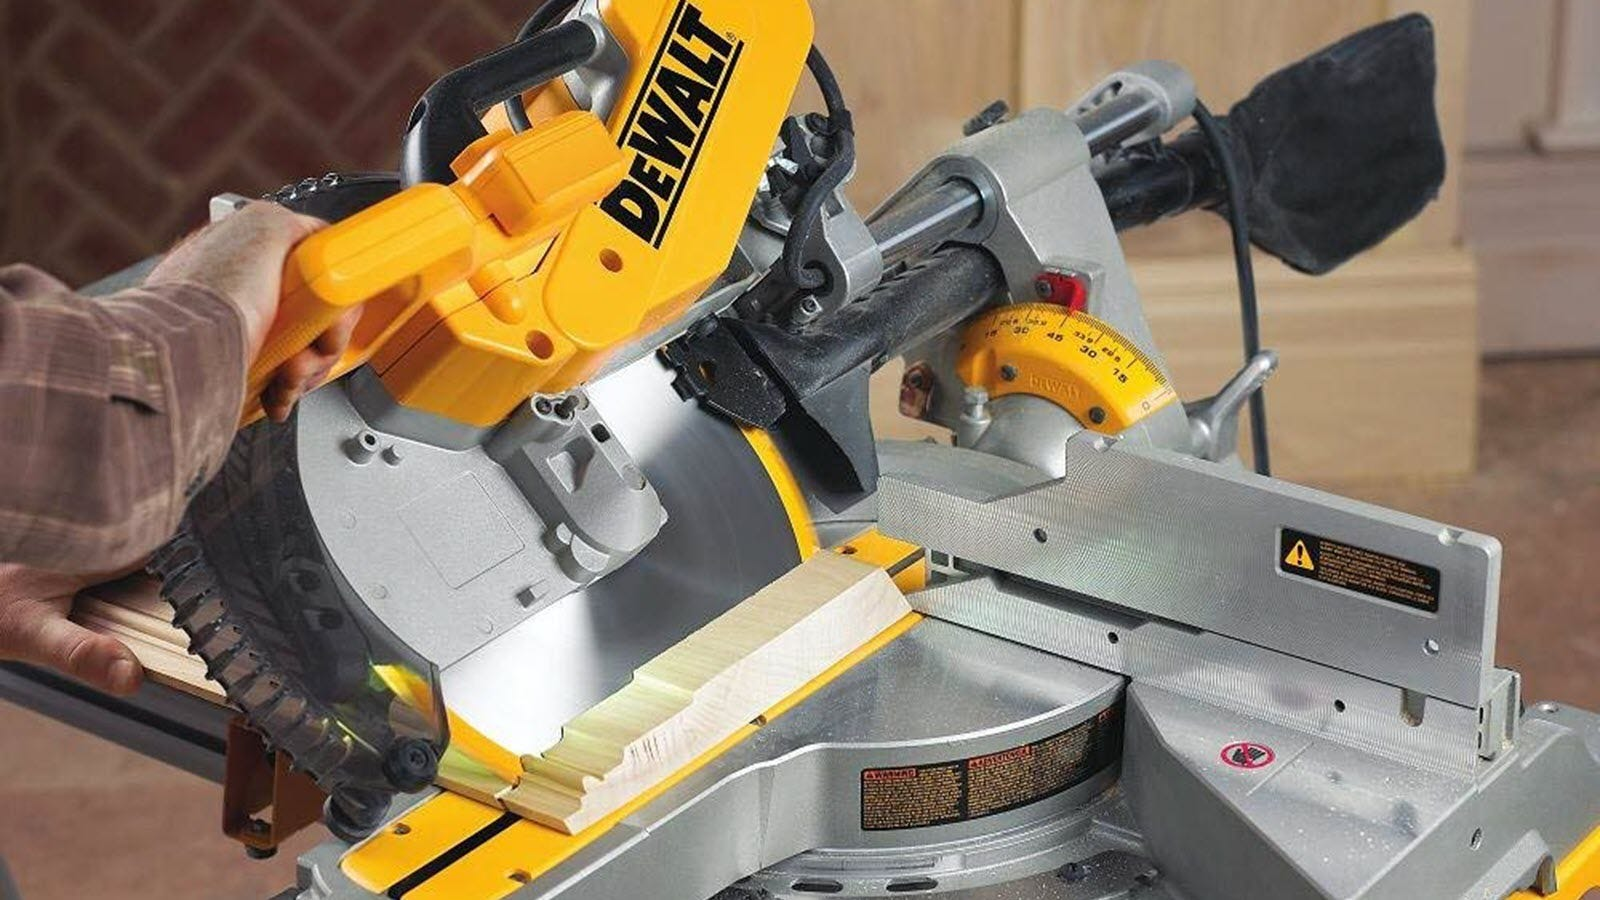 A DeWalt miter saw tilted at and angle to cut through floor molding.